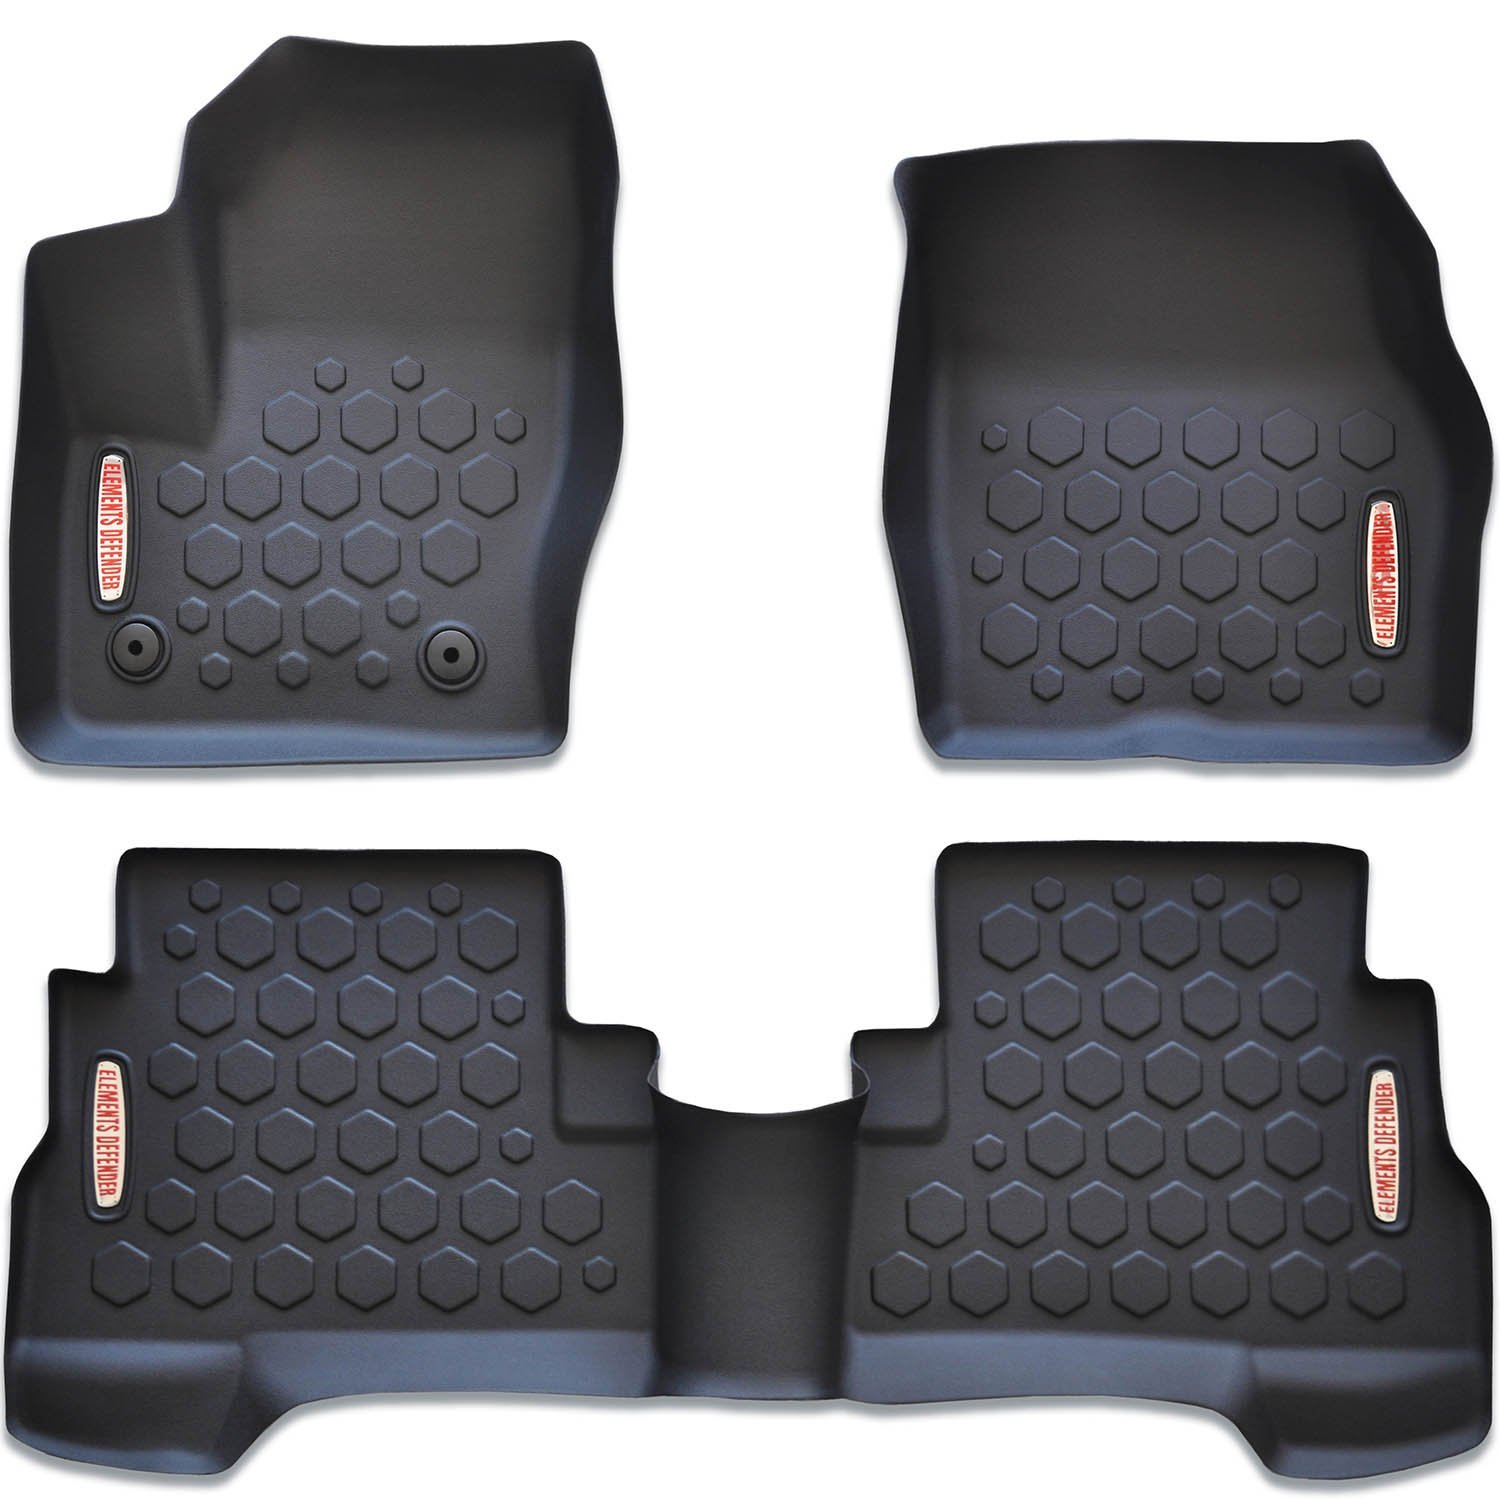 Elements Defender 2013-2018 Ford Escape Floor Mats (Front & Rear Liners - 100% Weather Resistant) 1st & 2nd Row Liners Fits All 2013, 2014, 2015, 2016, 2017, 2018 Escape Models (Including C-Max)